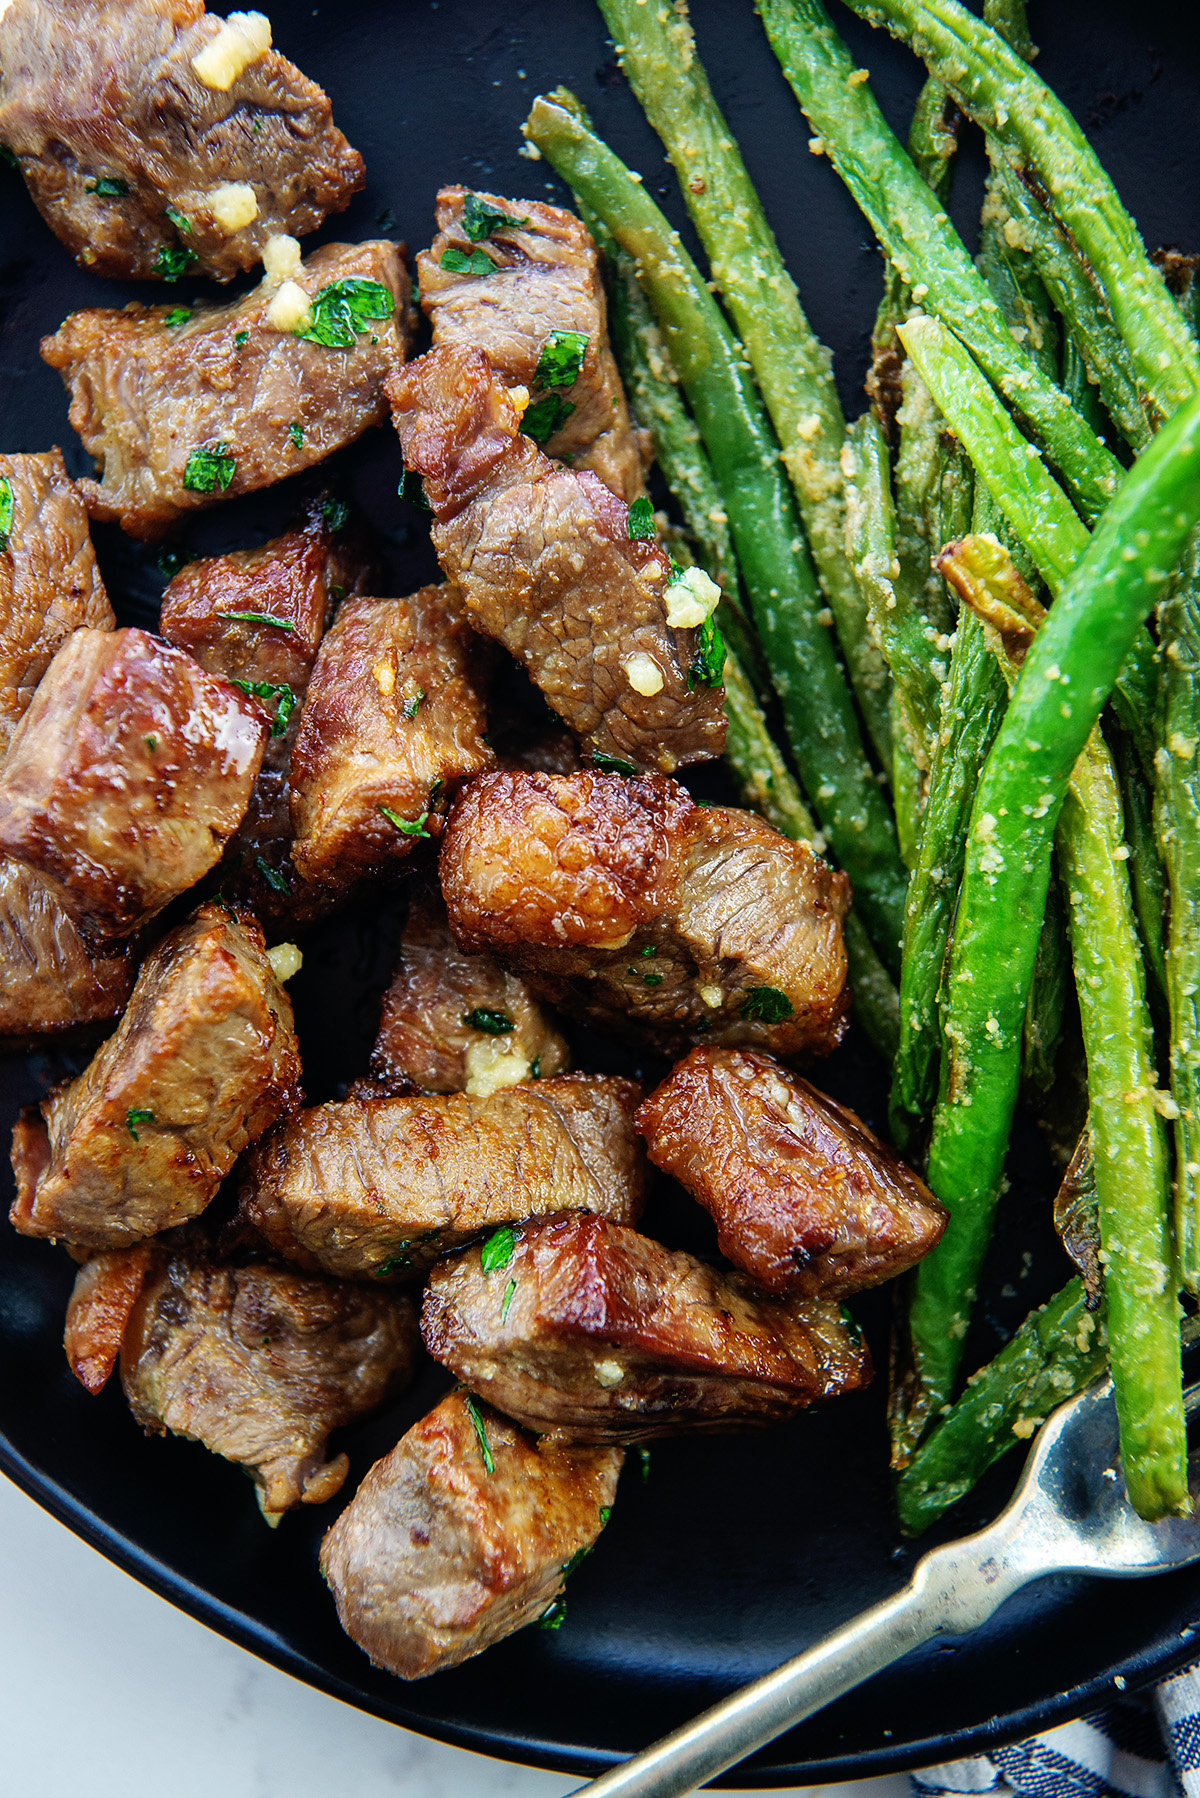 Close up overhead view of cooked steak bites and asparagus on a black plate